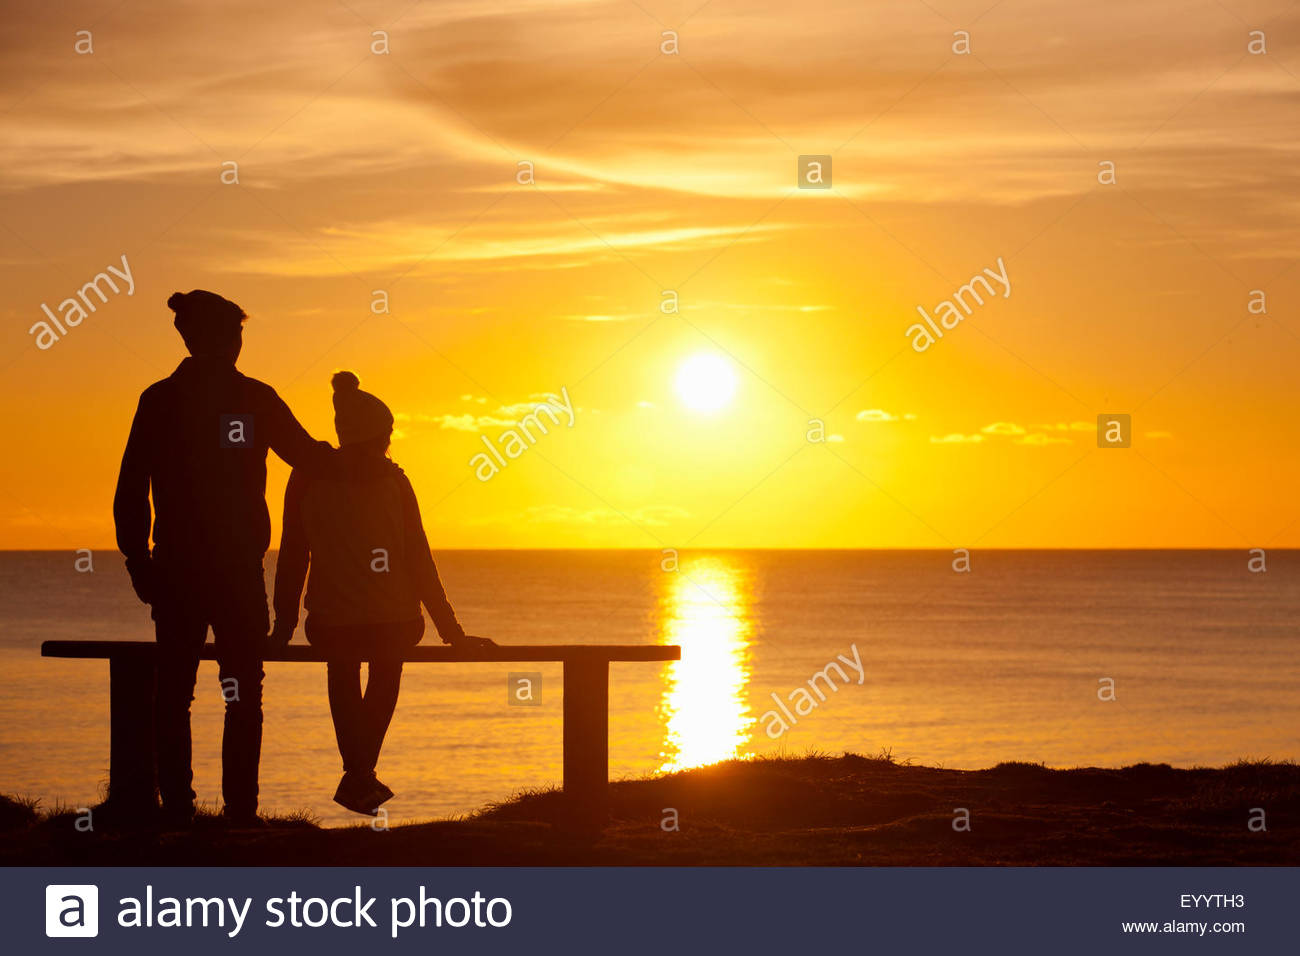 Silhouette of couple, on bench, against sunset over the ocean - Stock Image